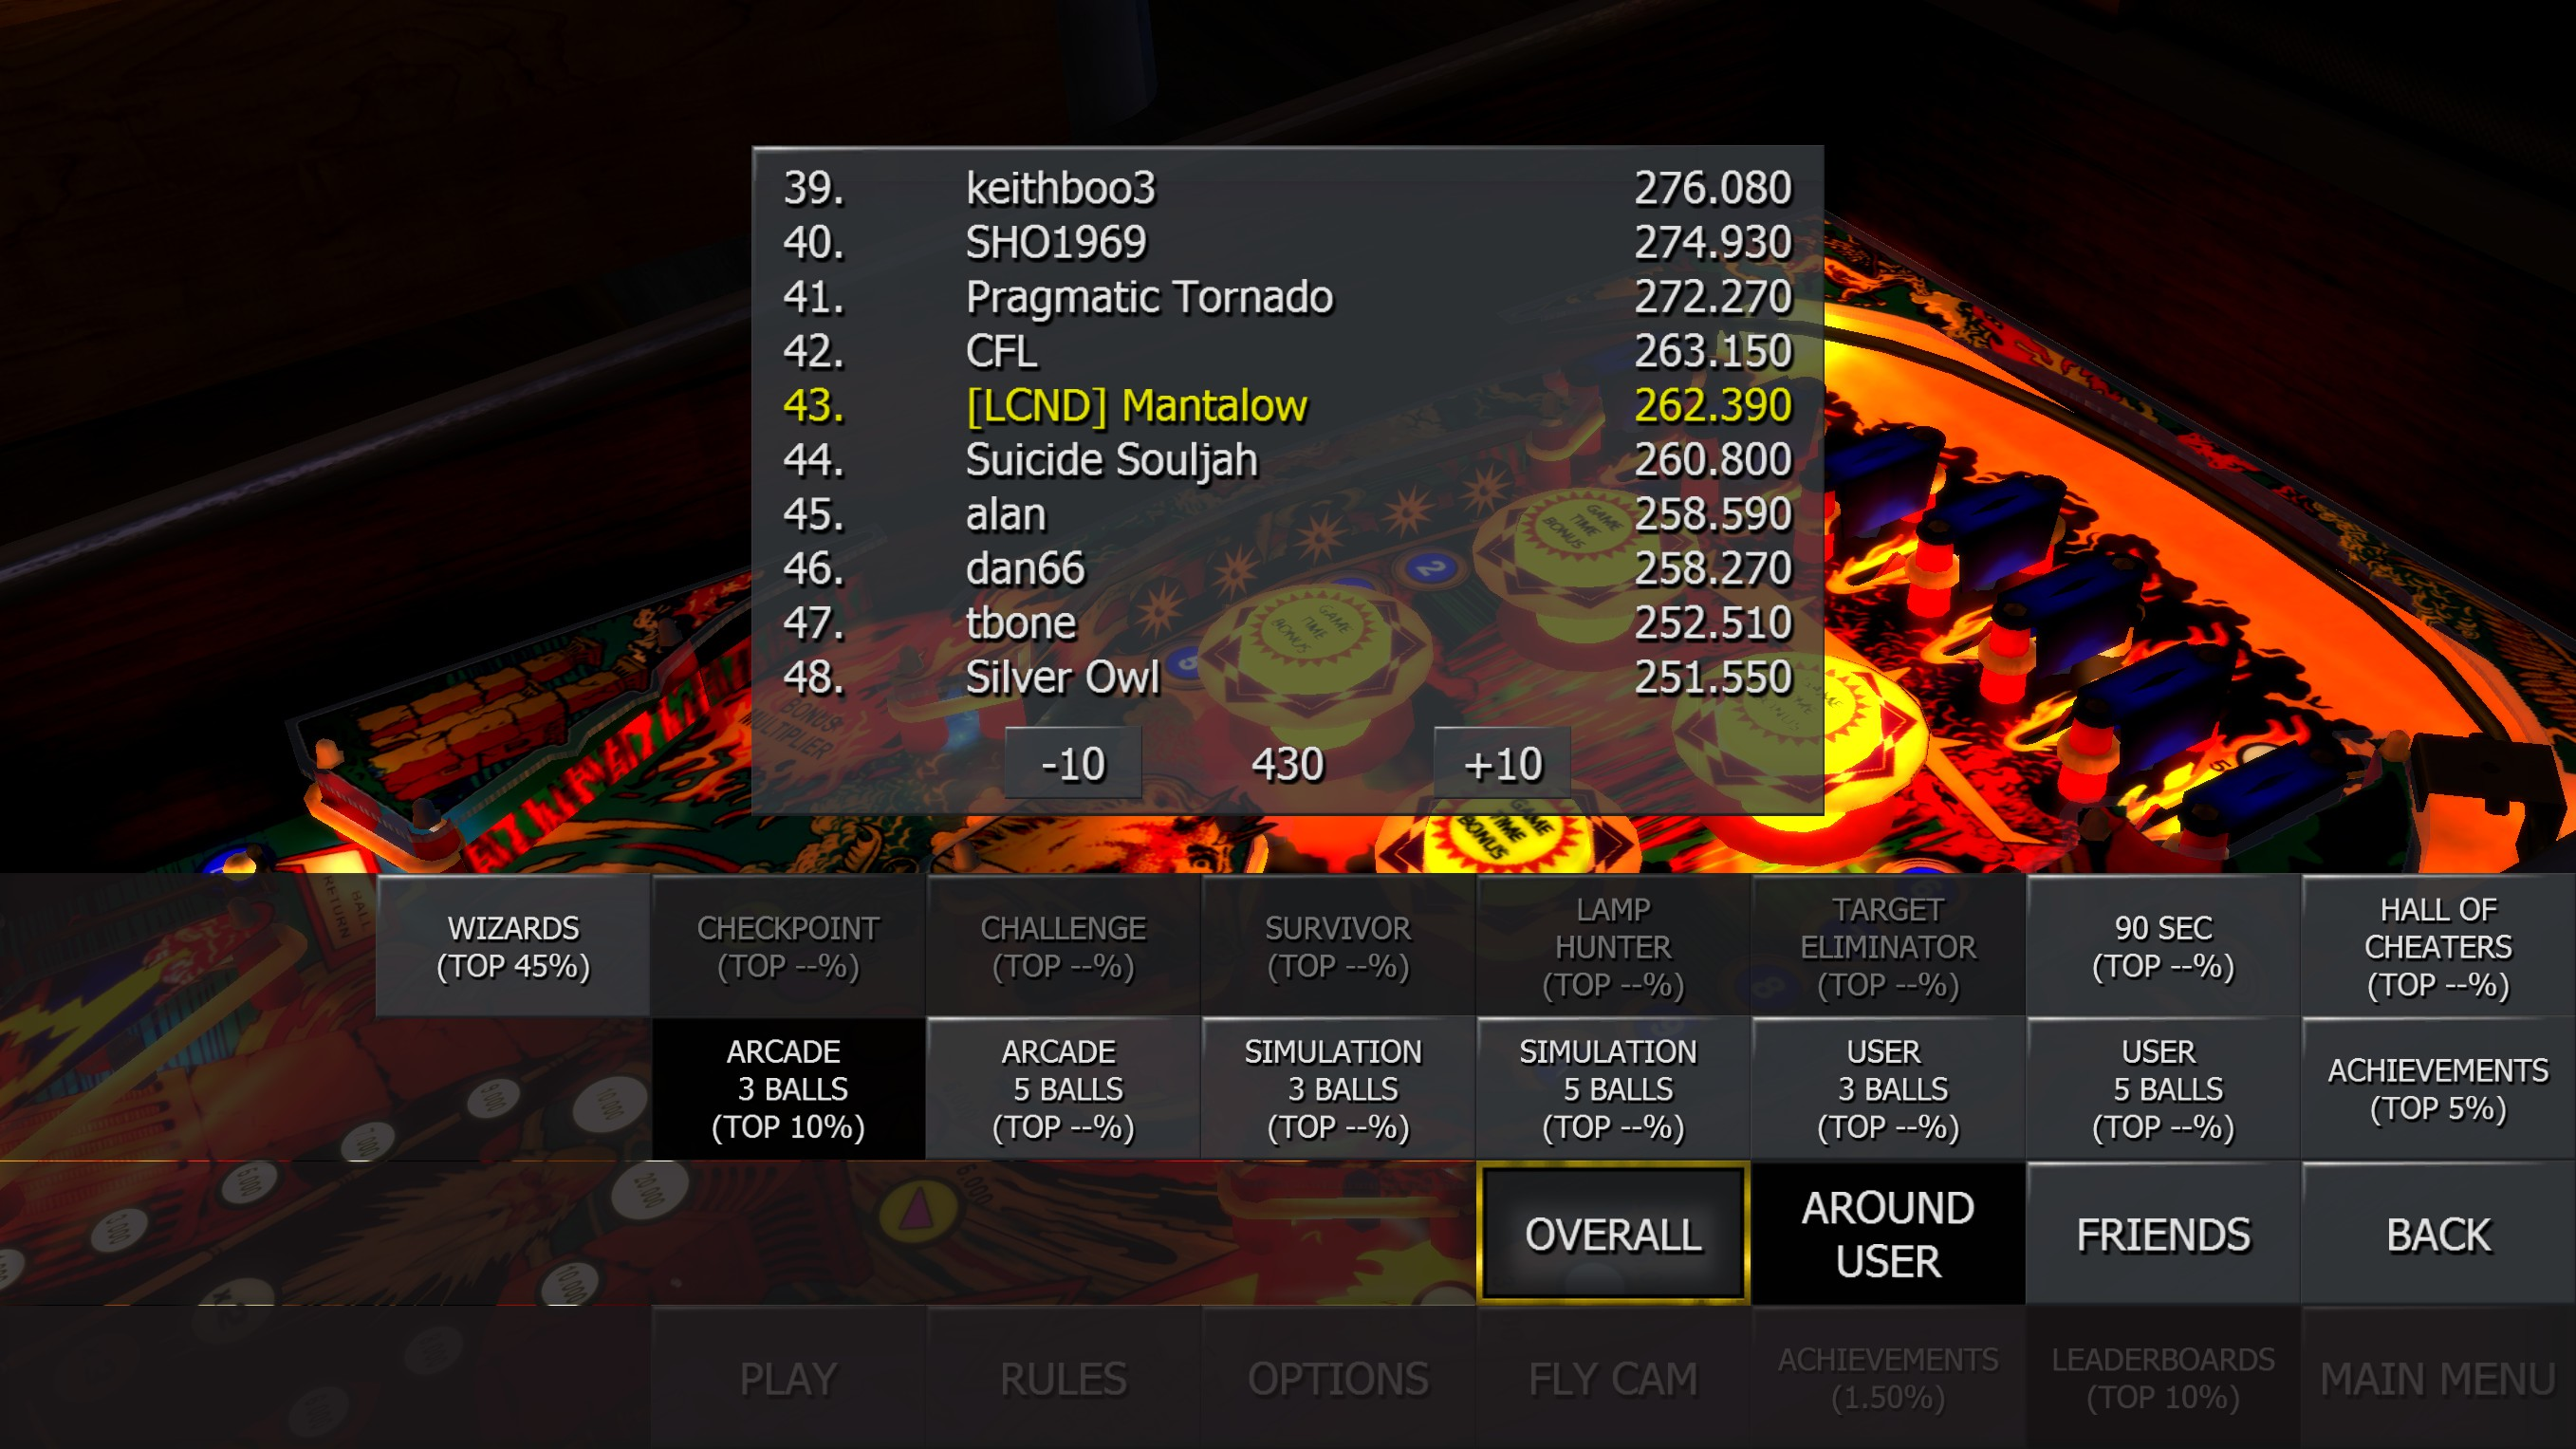 Mantalow: Zaccaria Pinball: Earth Wind Fire [3 balls] (PC) 262,390 points on 2016-09-28 03:39:03